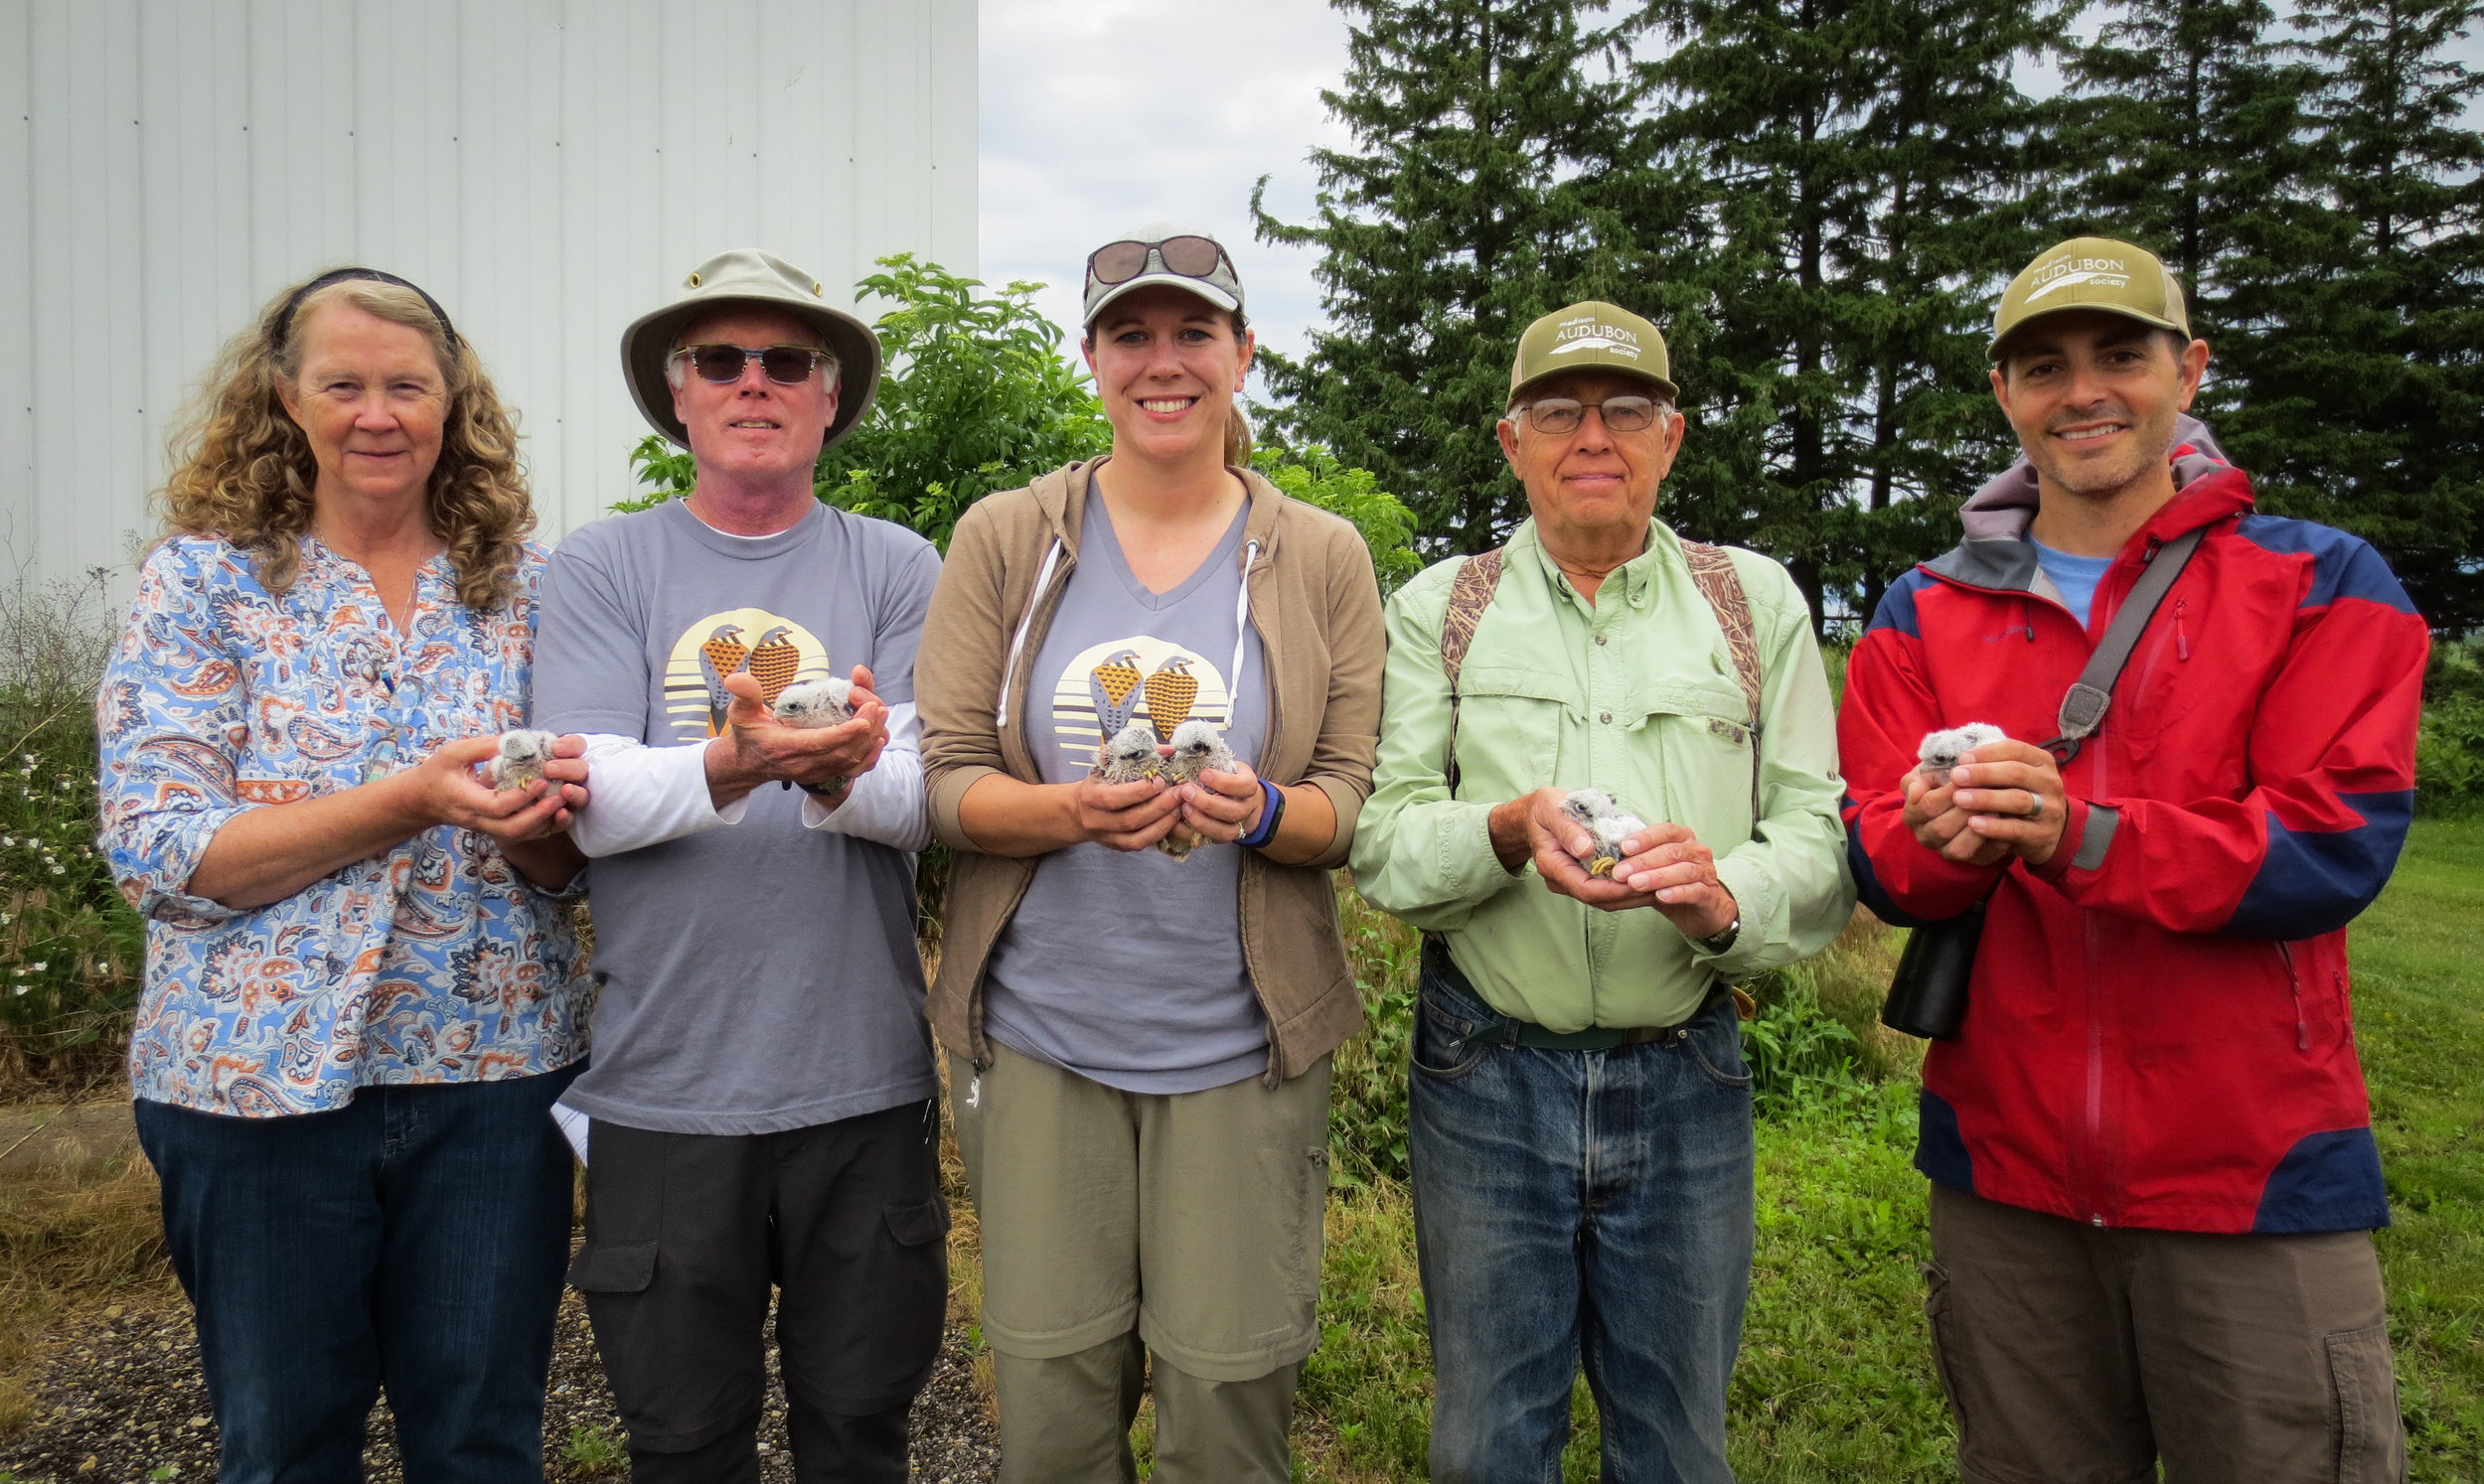 Local kestrel program coordinators (L to R): Janet Eschenbauch, CWKR coordinator and biologist; Brand Smith, MAS volunteer; Amber Eschenbauch, CWKR biologist; Mark Martin, MAS Goose Pond Sanctuary resident co-manager; Matt Reetz, MAS executive director. Photo by Madison Audubon Society. June 15, 2018